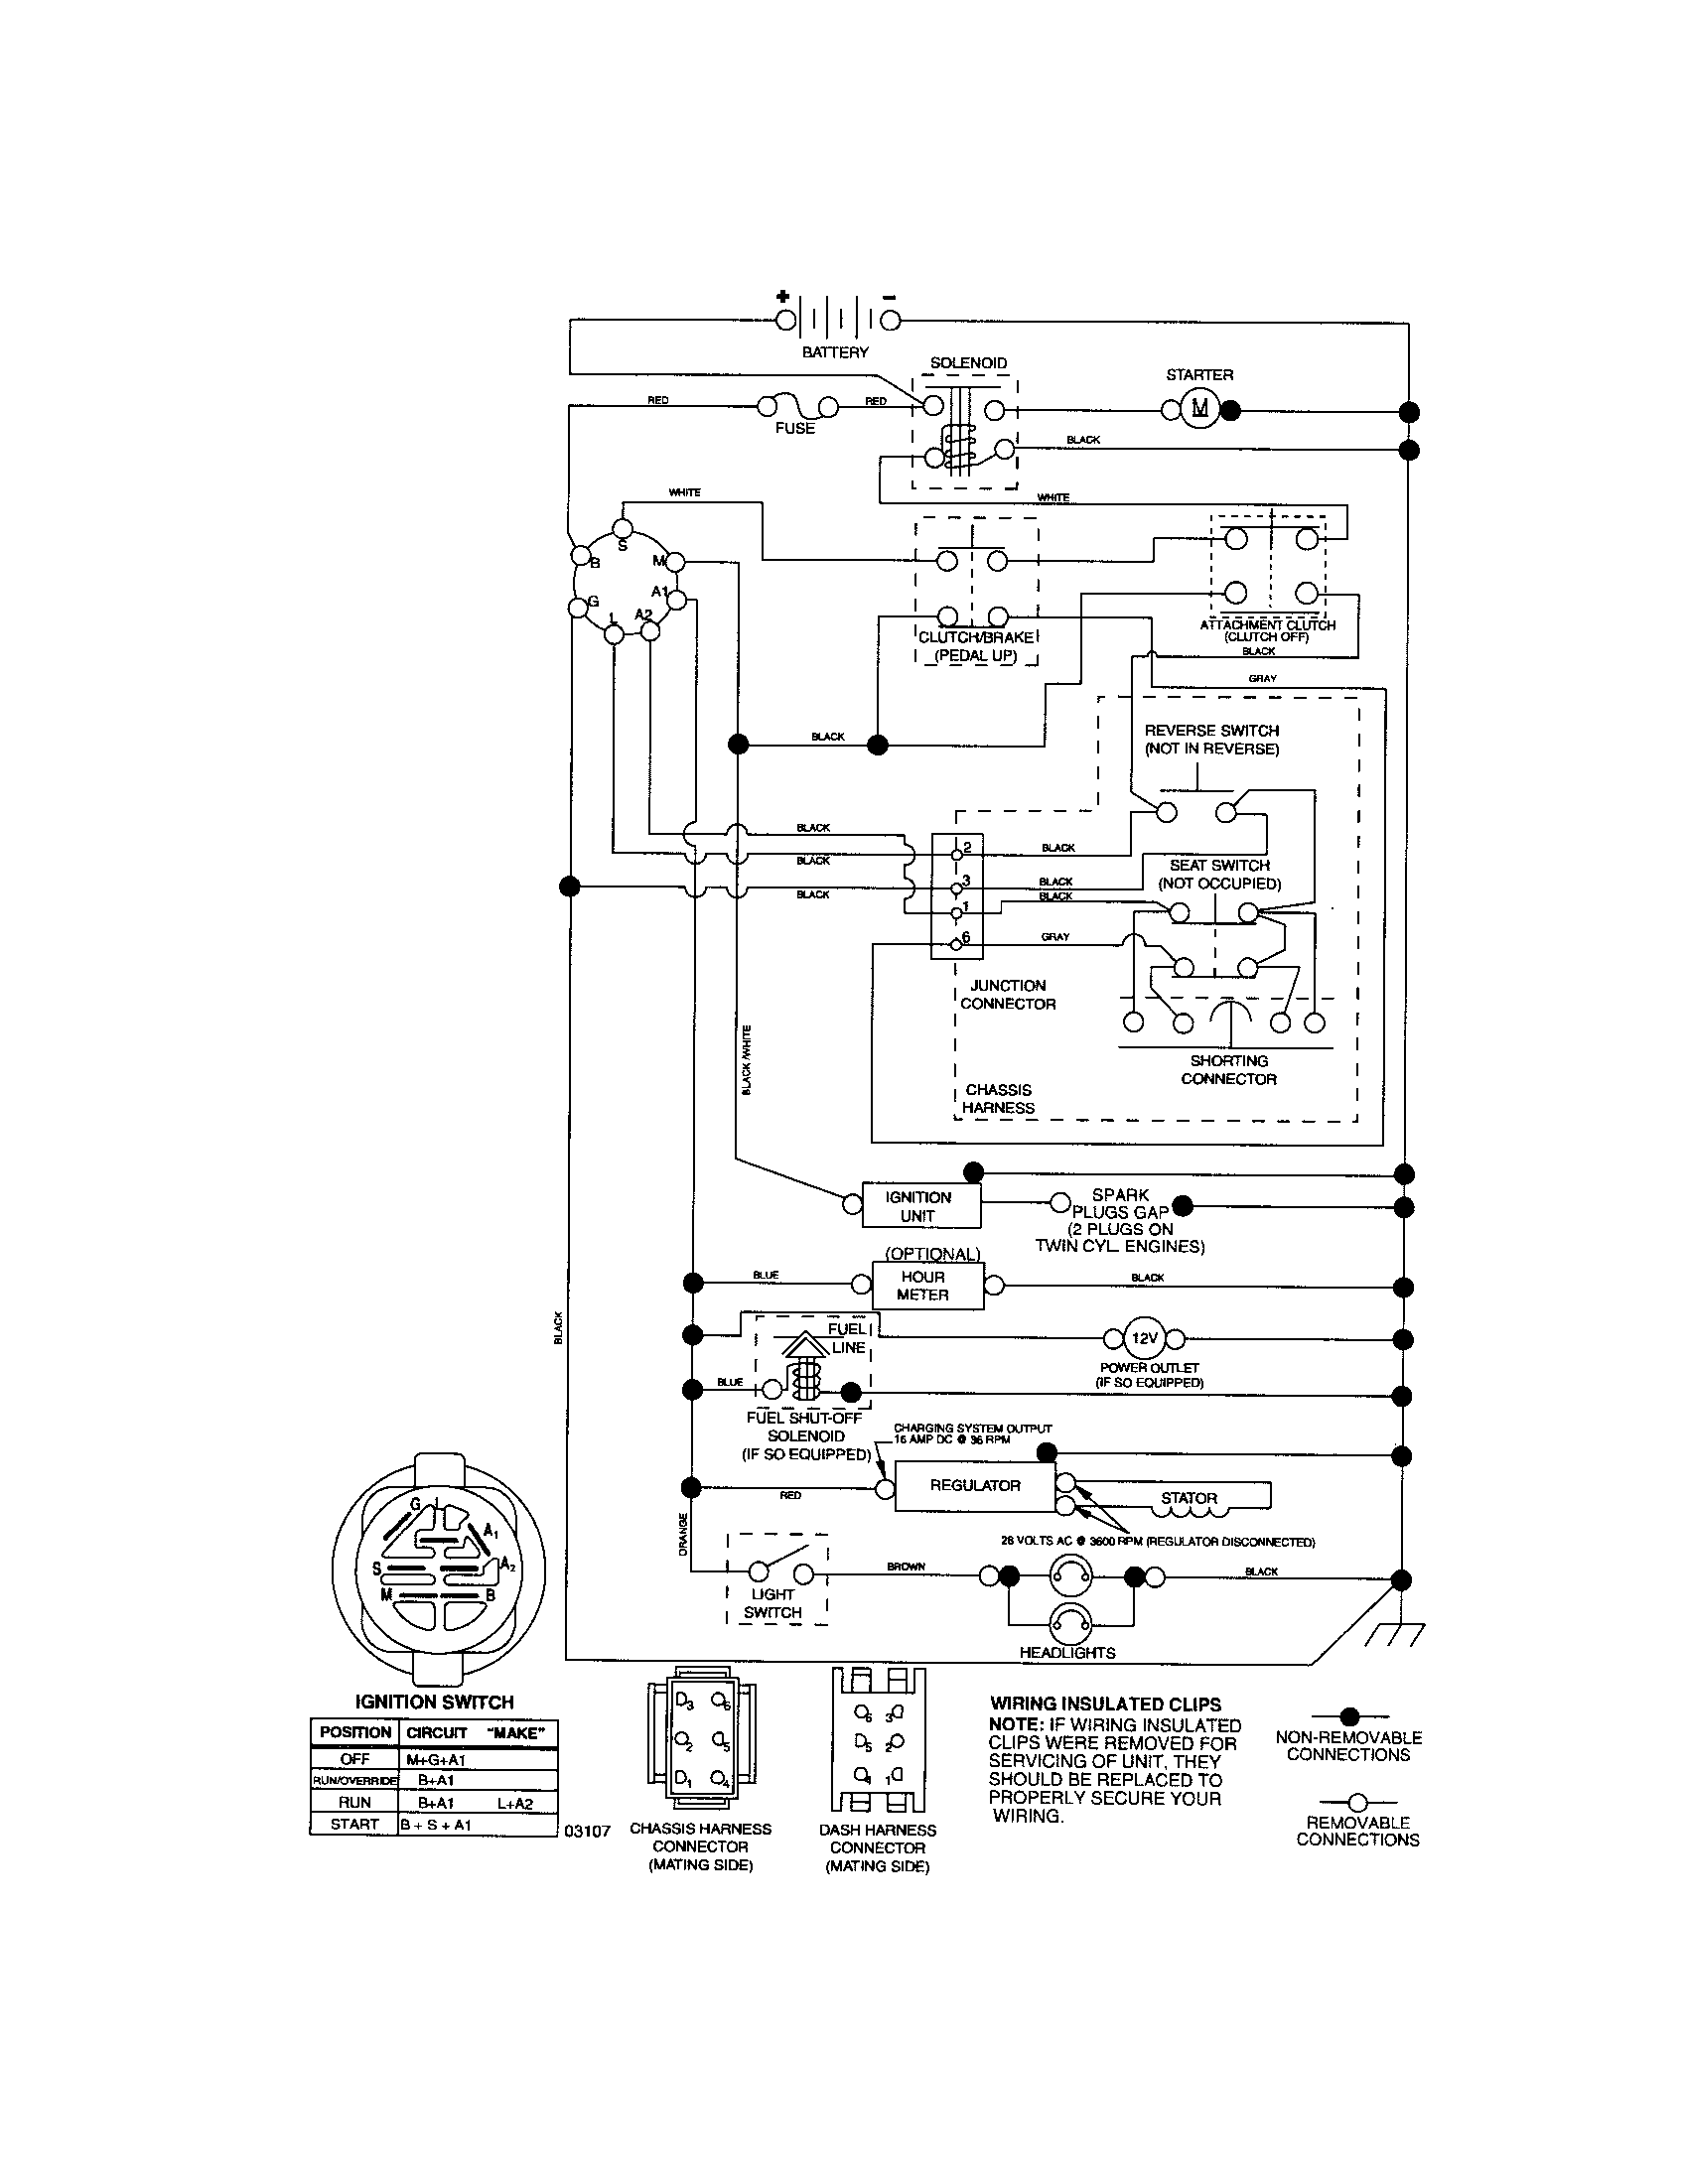 6af5f1447fd13c8443376822ddc1e105 craftsman riding mower electrical diagram wiring diagram Universal Wiring Harness Diagram at arjmand.co